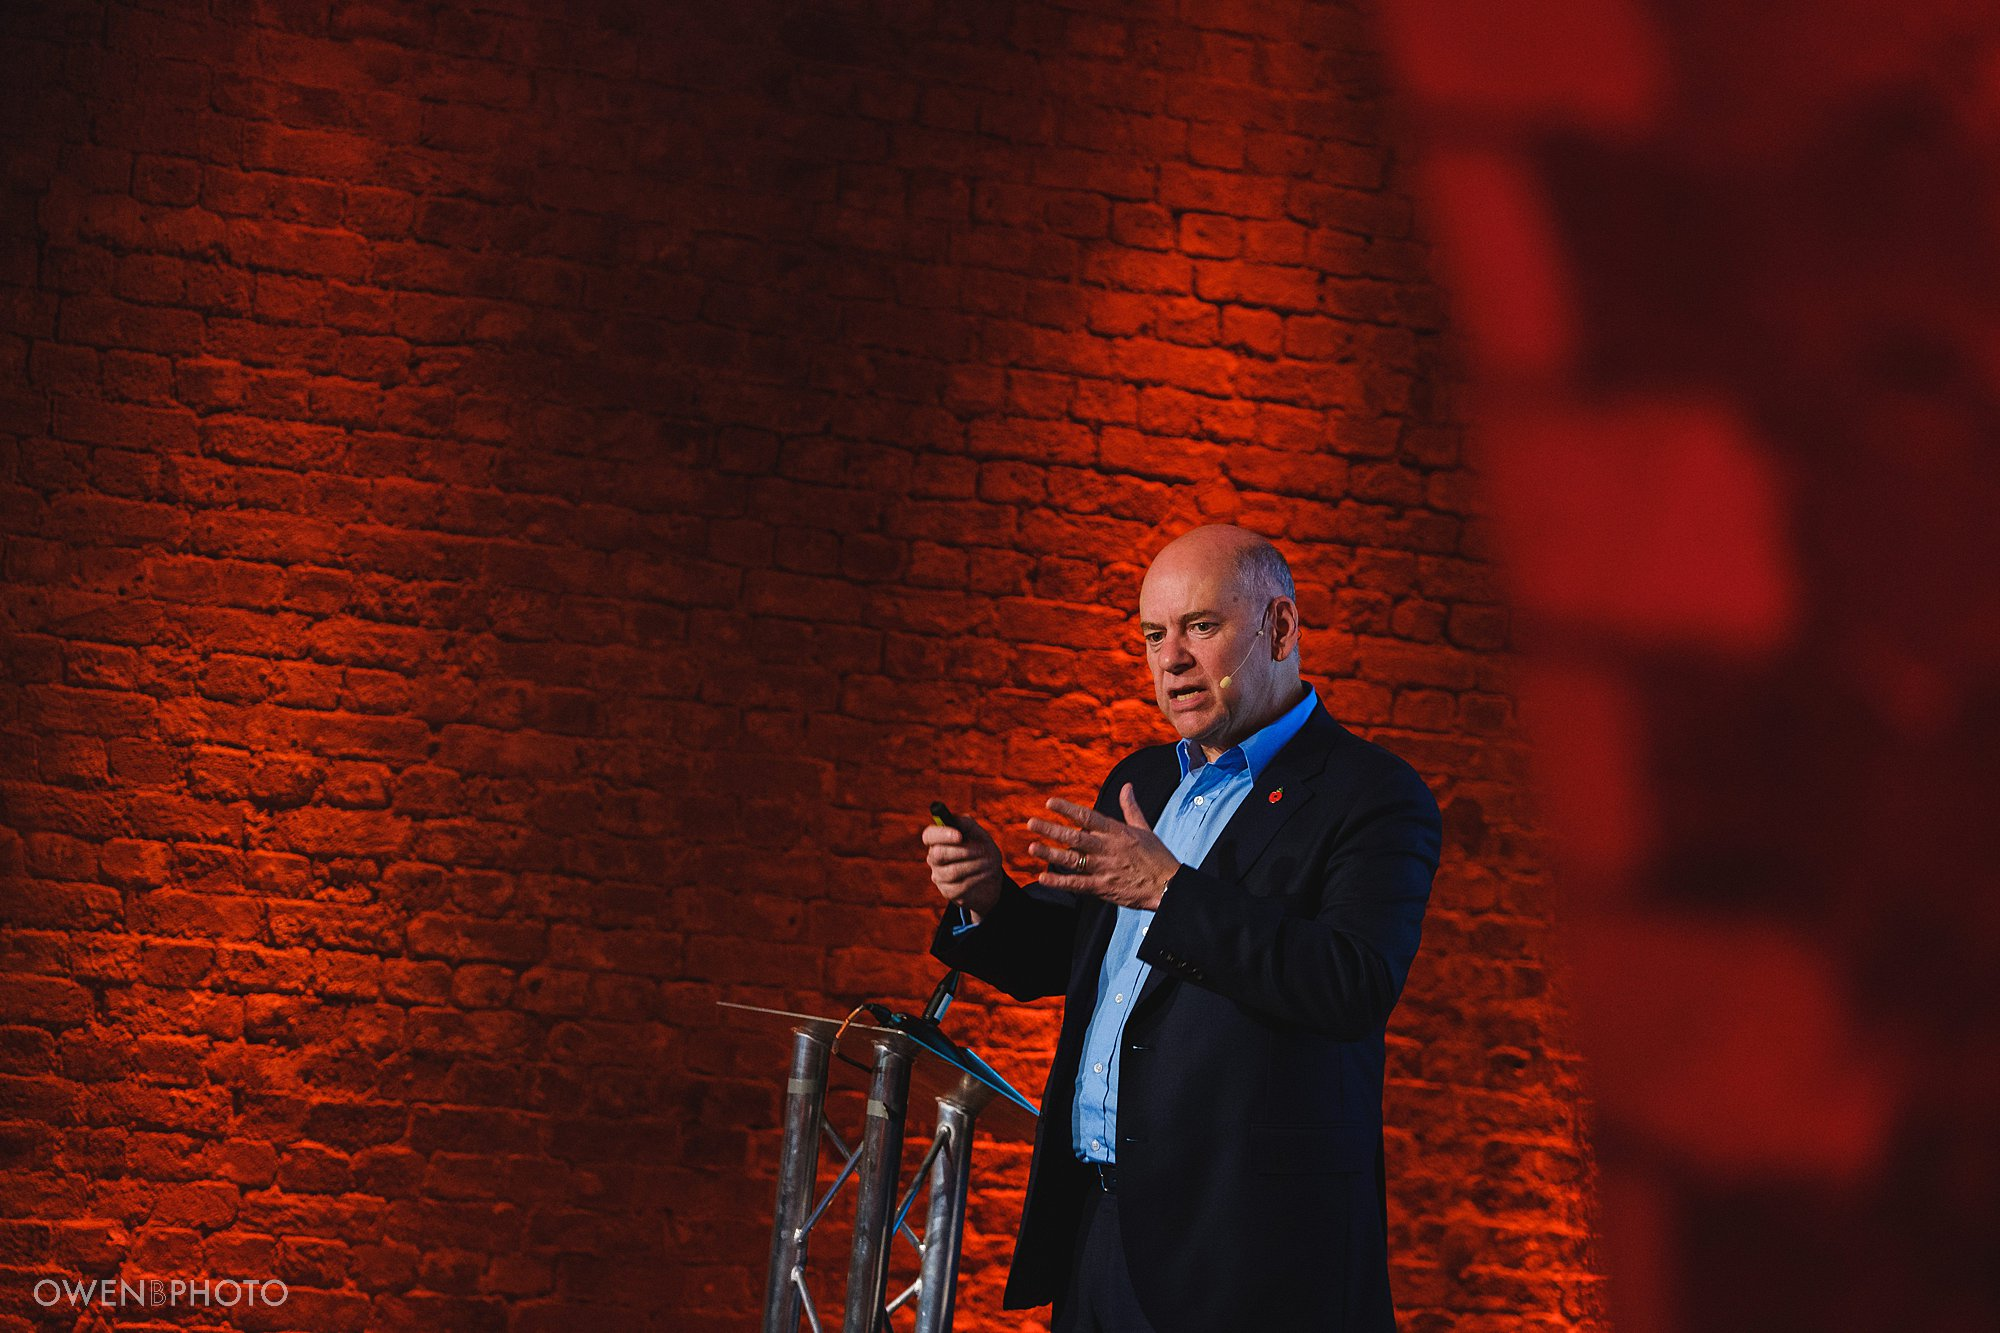 lord jonathan evans speaks at a corporate conference at the steelyard in london